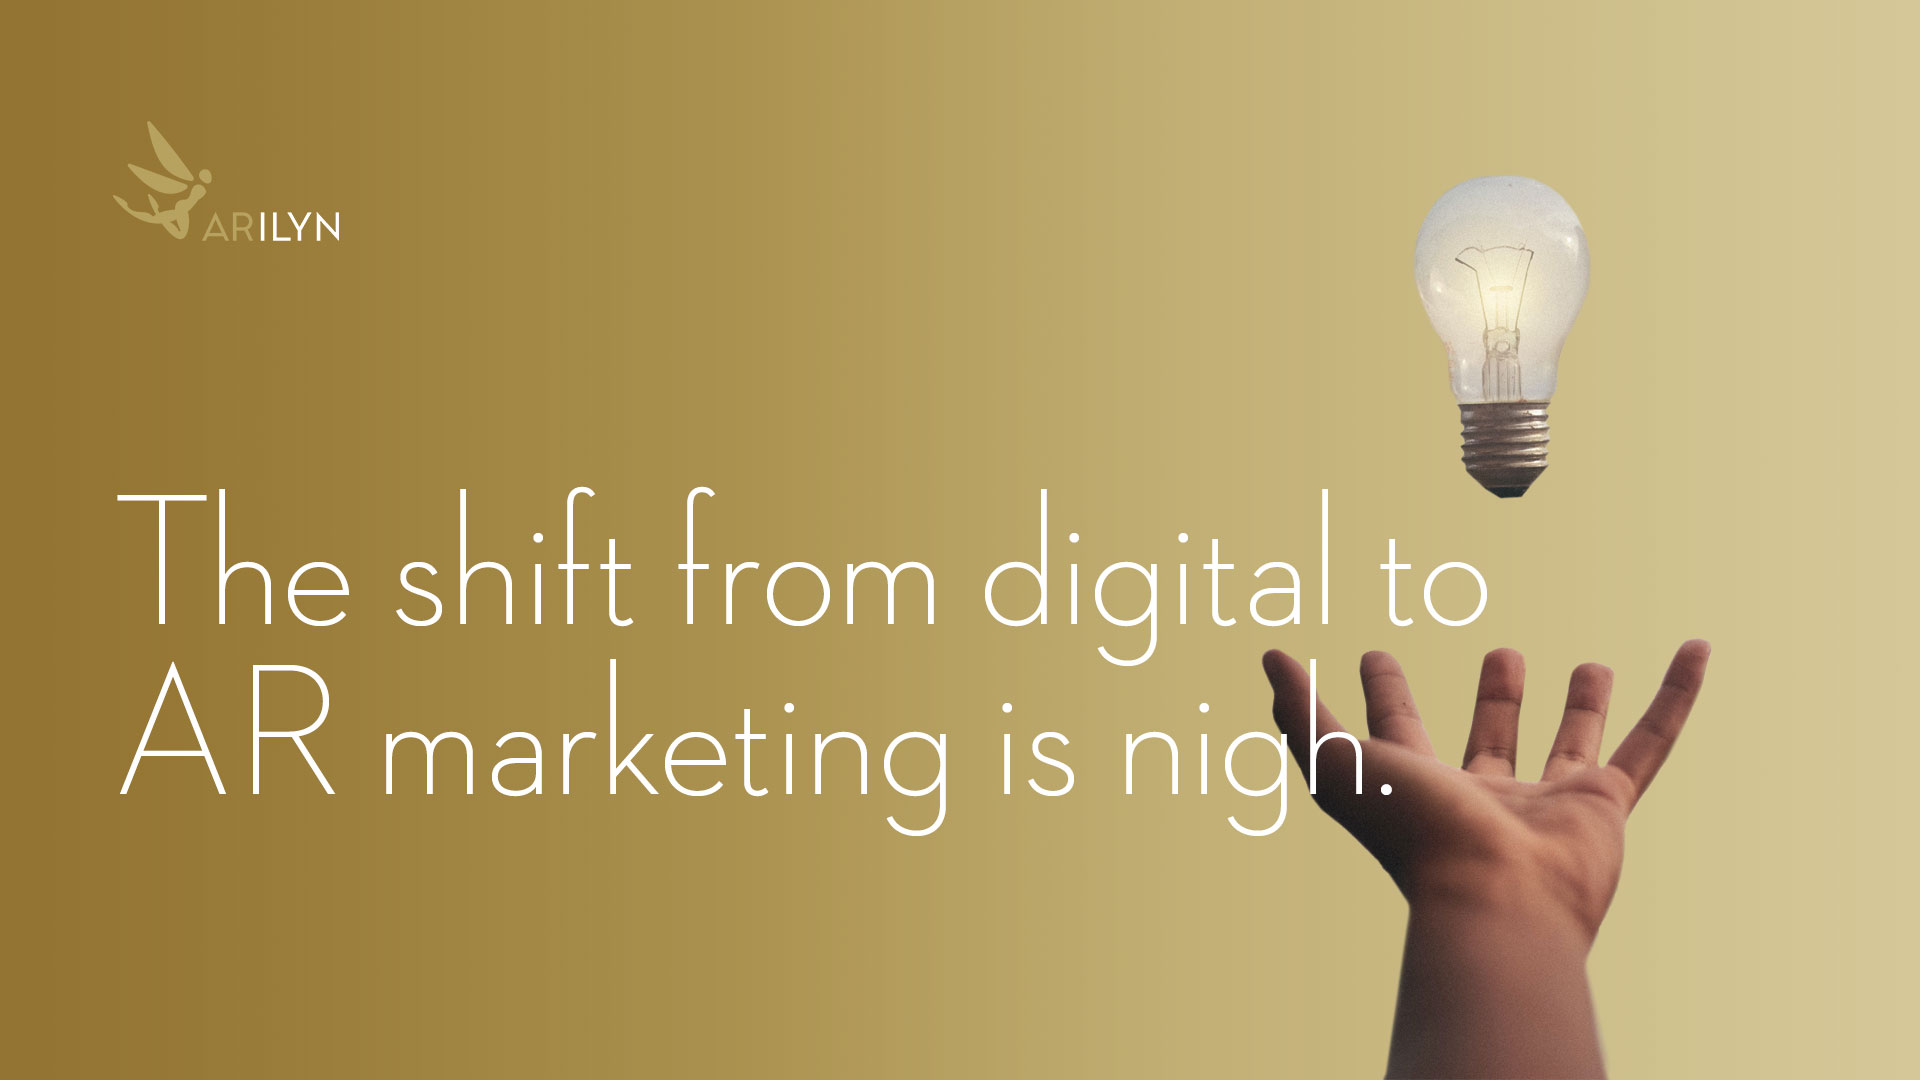 Shift from digital to AR marketing is nigh - stand out from the noise